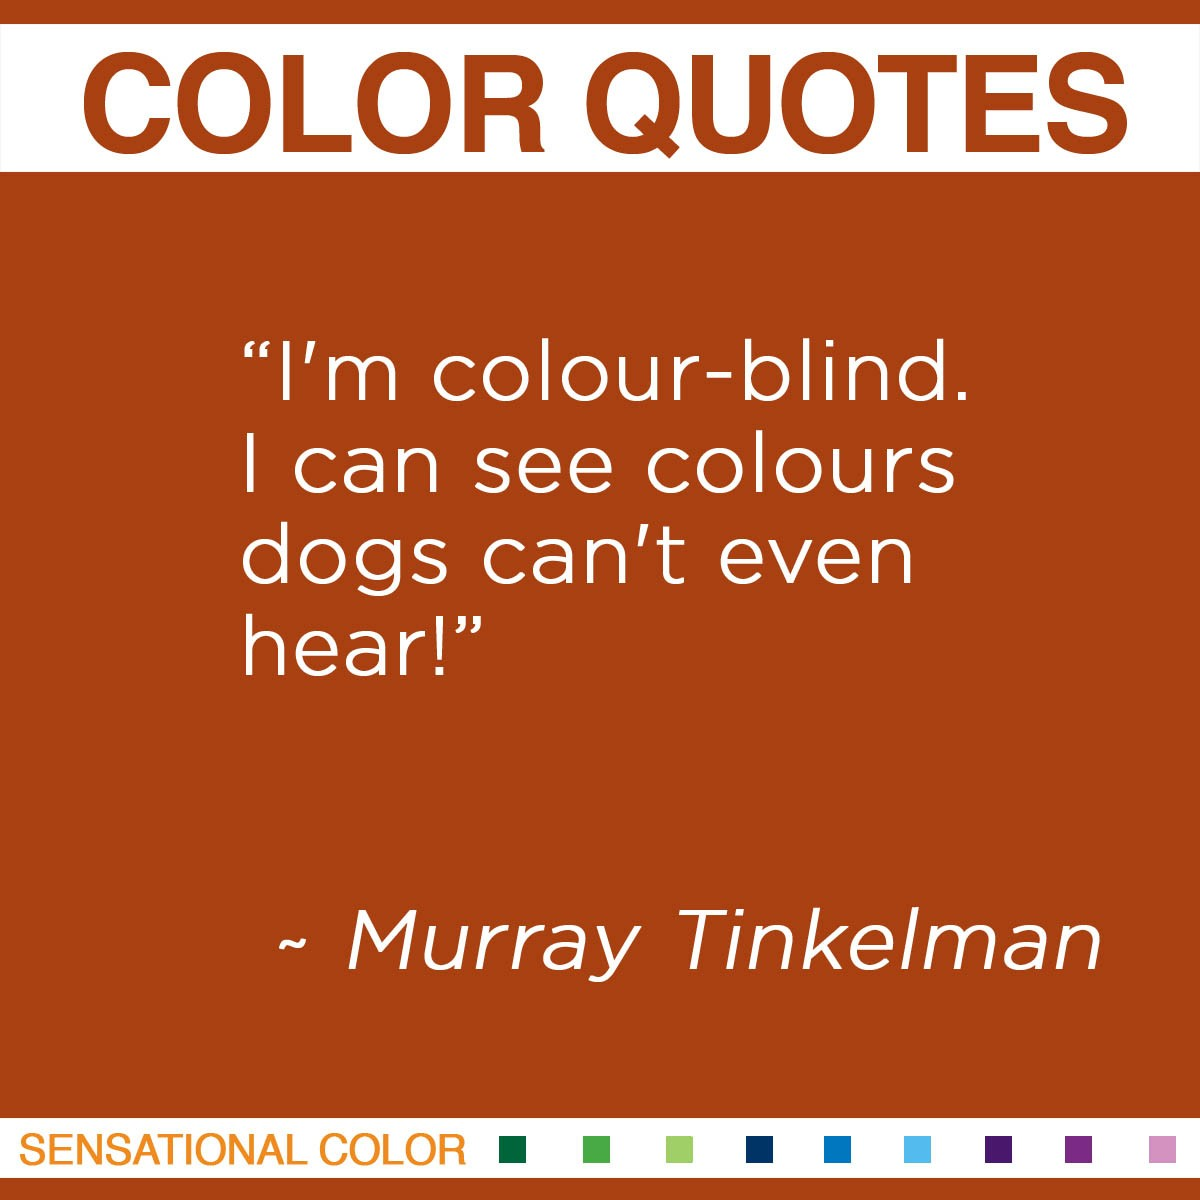 """I'm colour-blind. I can see colours dogs can't even hear!"" - Murray Tinkelman"